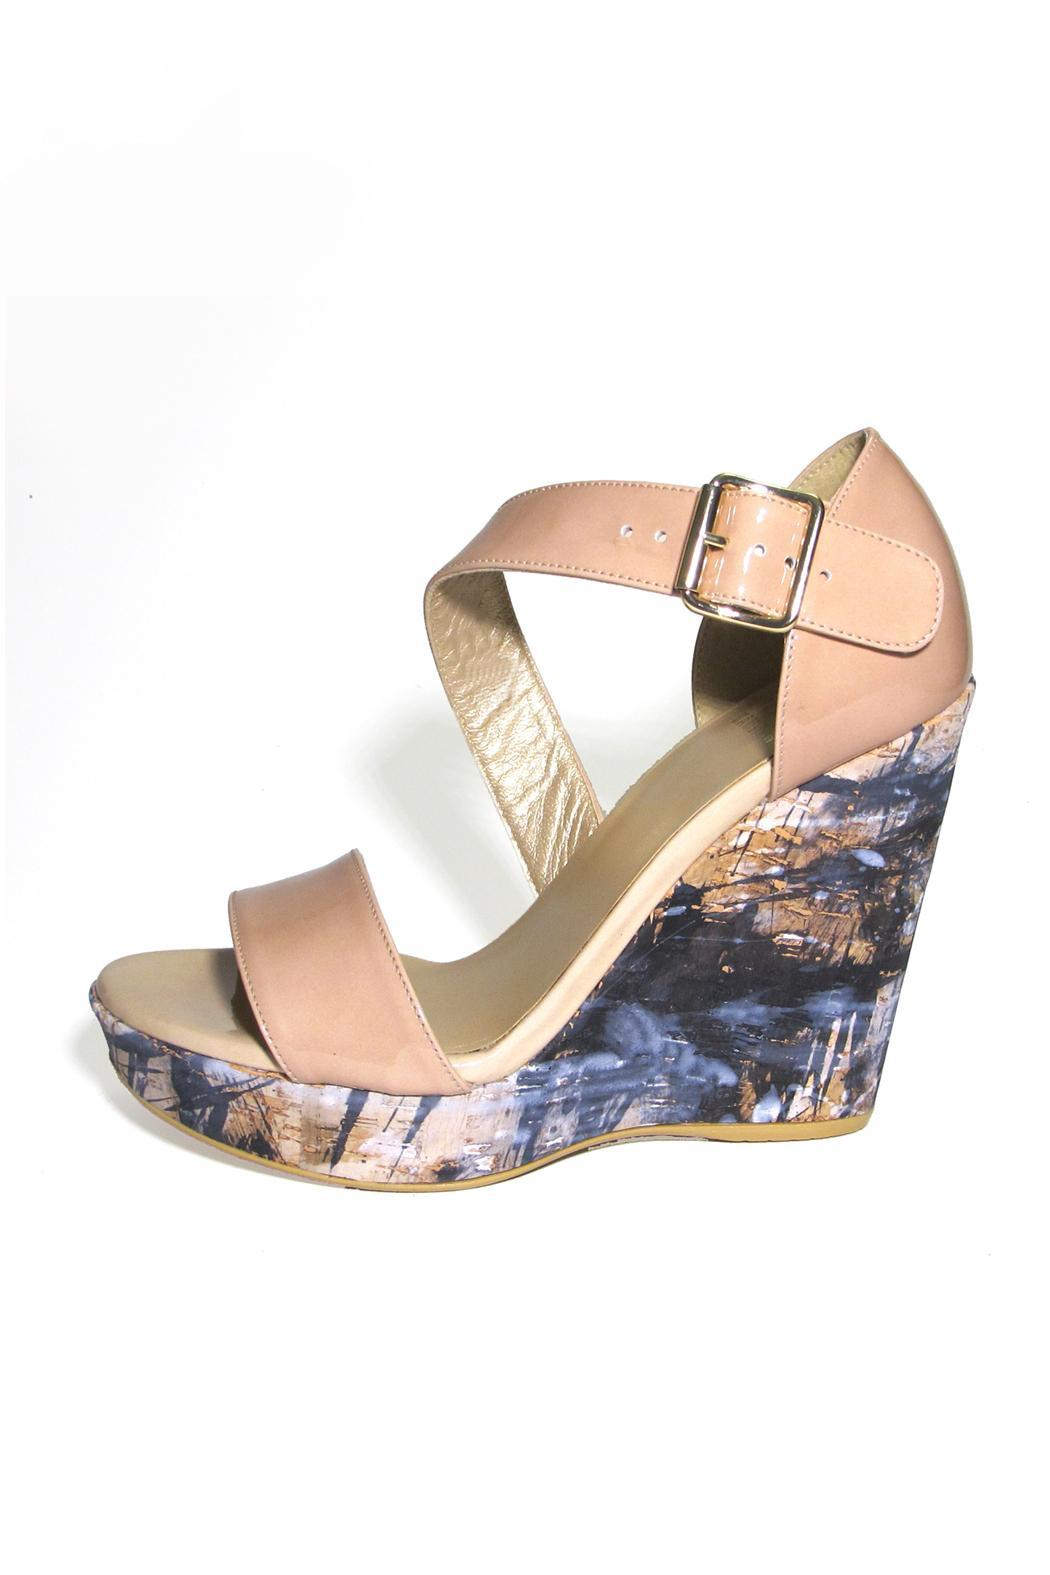 705443738291 Stuart Weitzman Oneliner Cork Wedge from South Carolina by Baehr ...